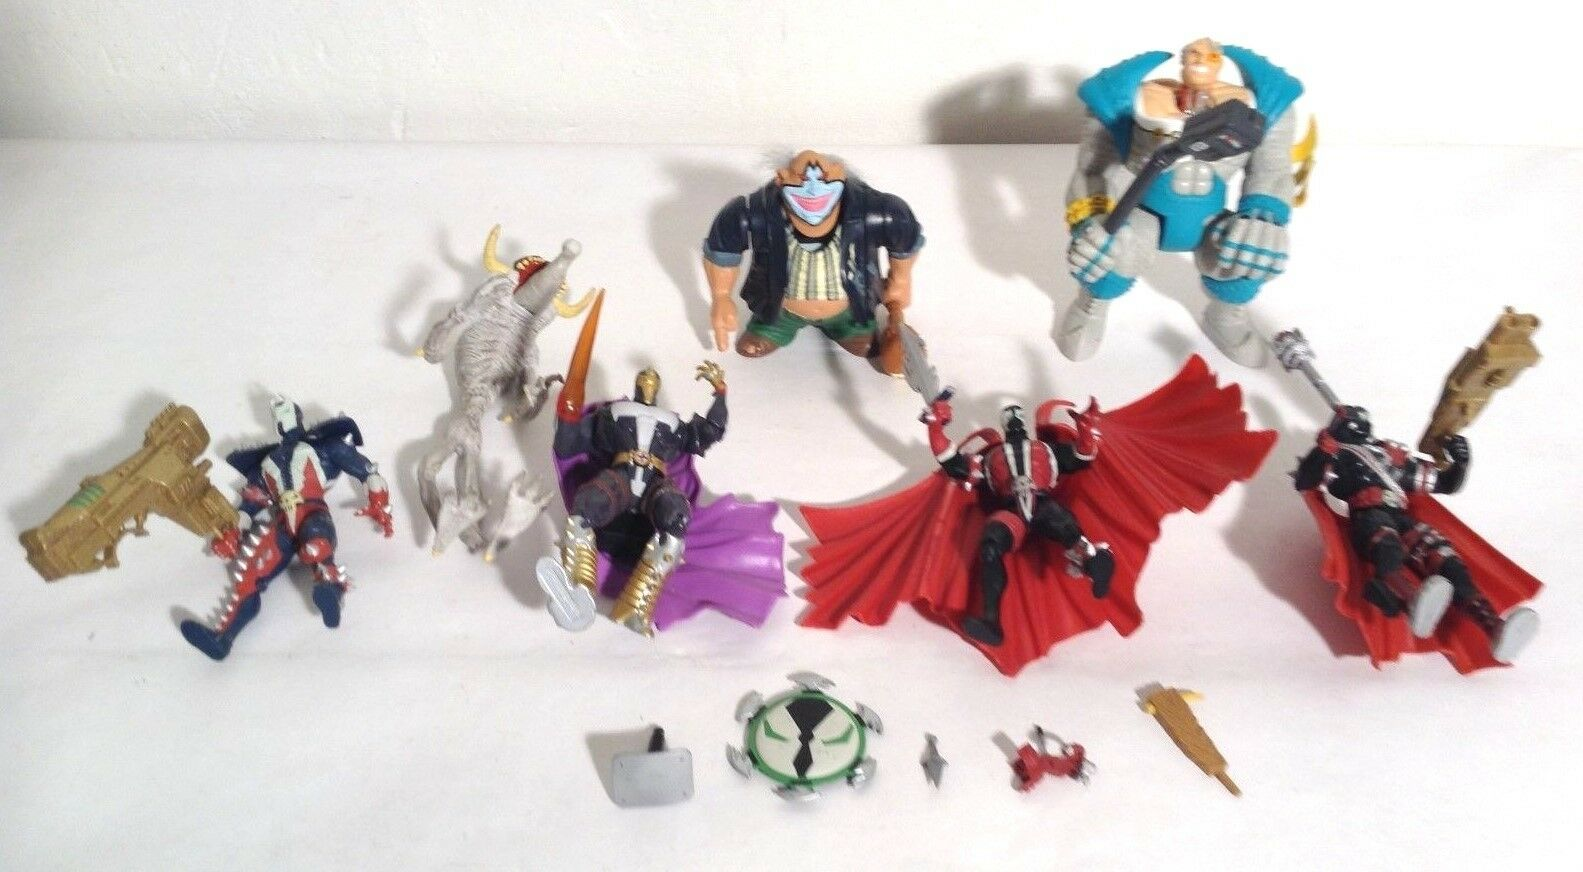 Todd McFarlane's SPAWN Action Figures, Lot of 7  Deluxe Editions from 1994-1995